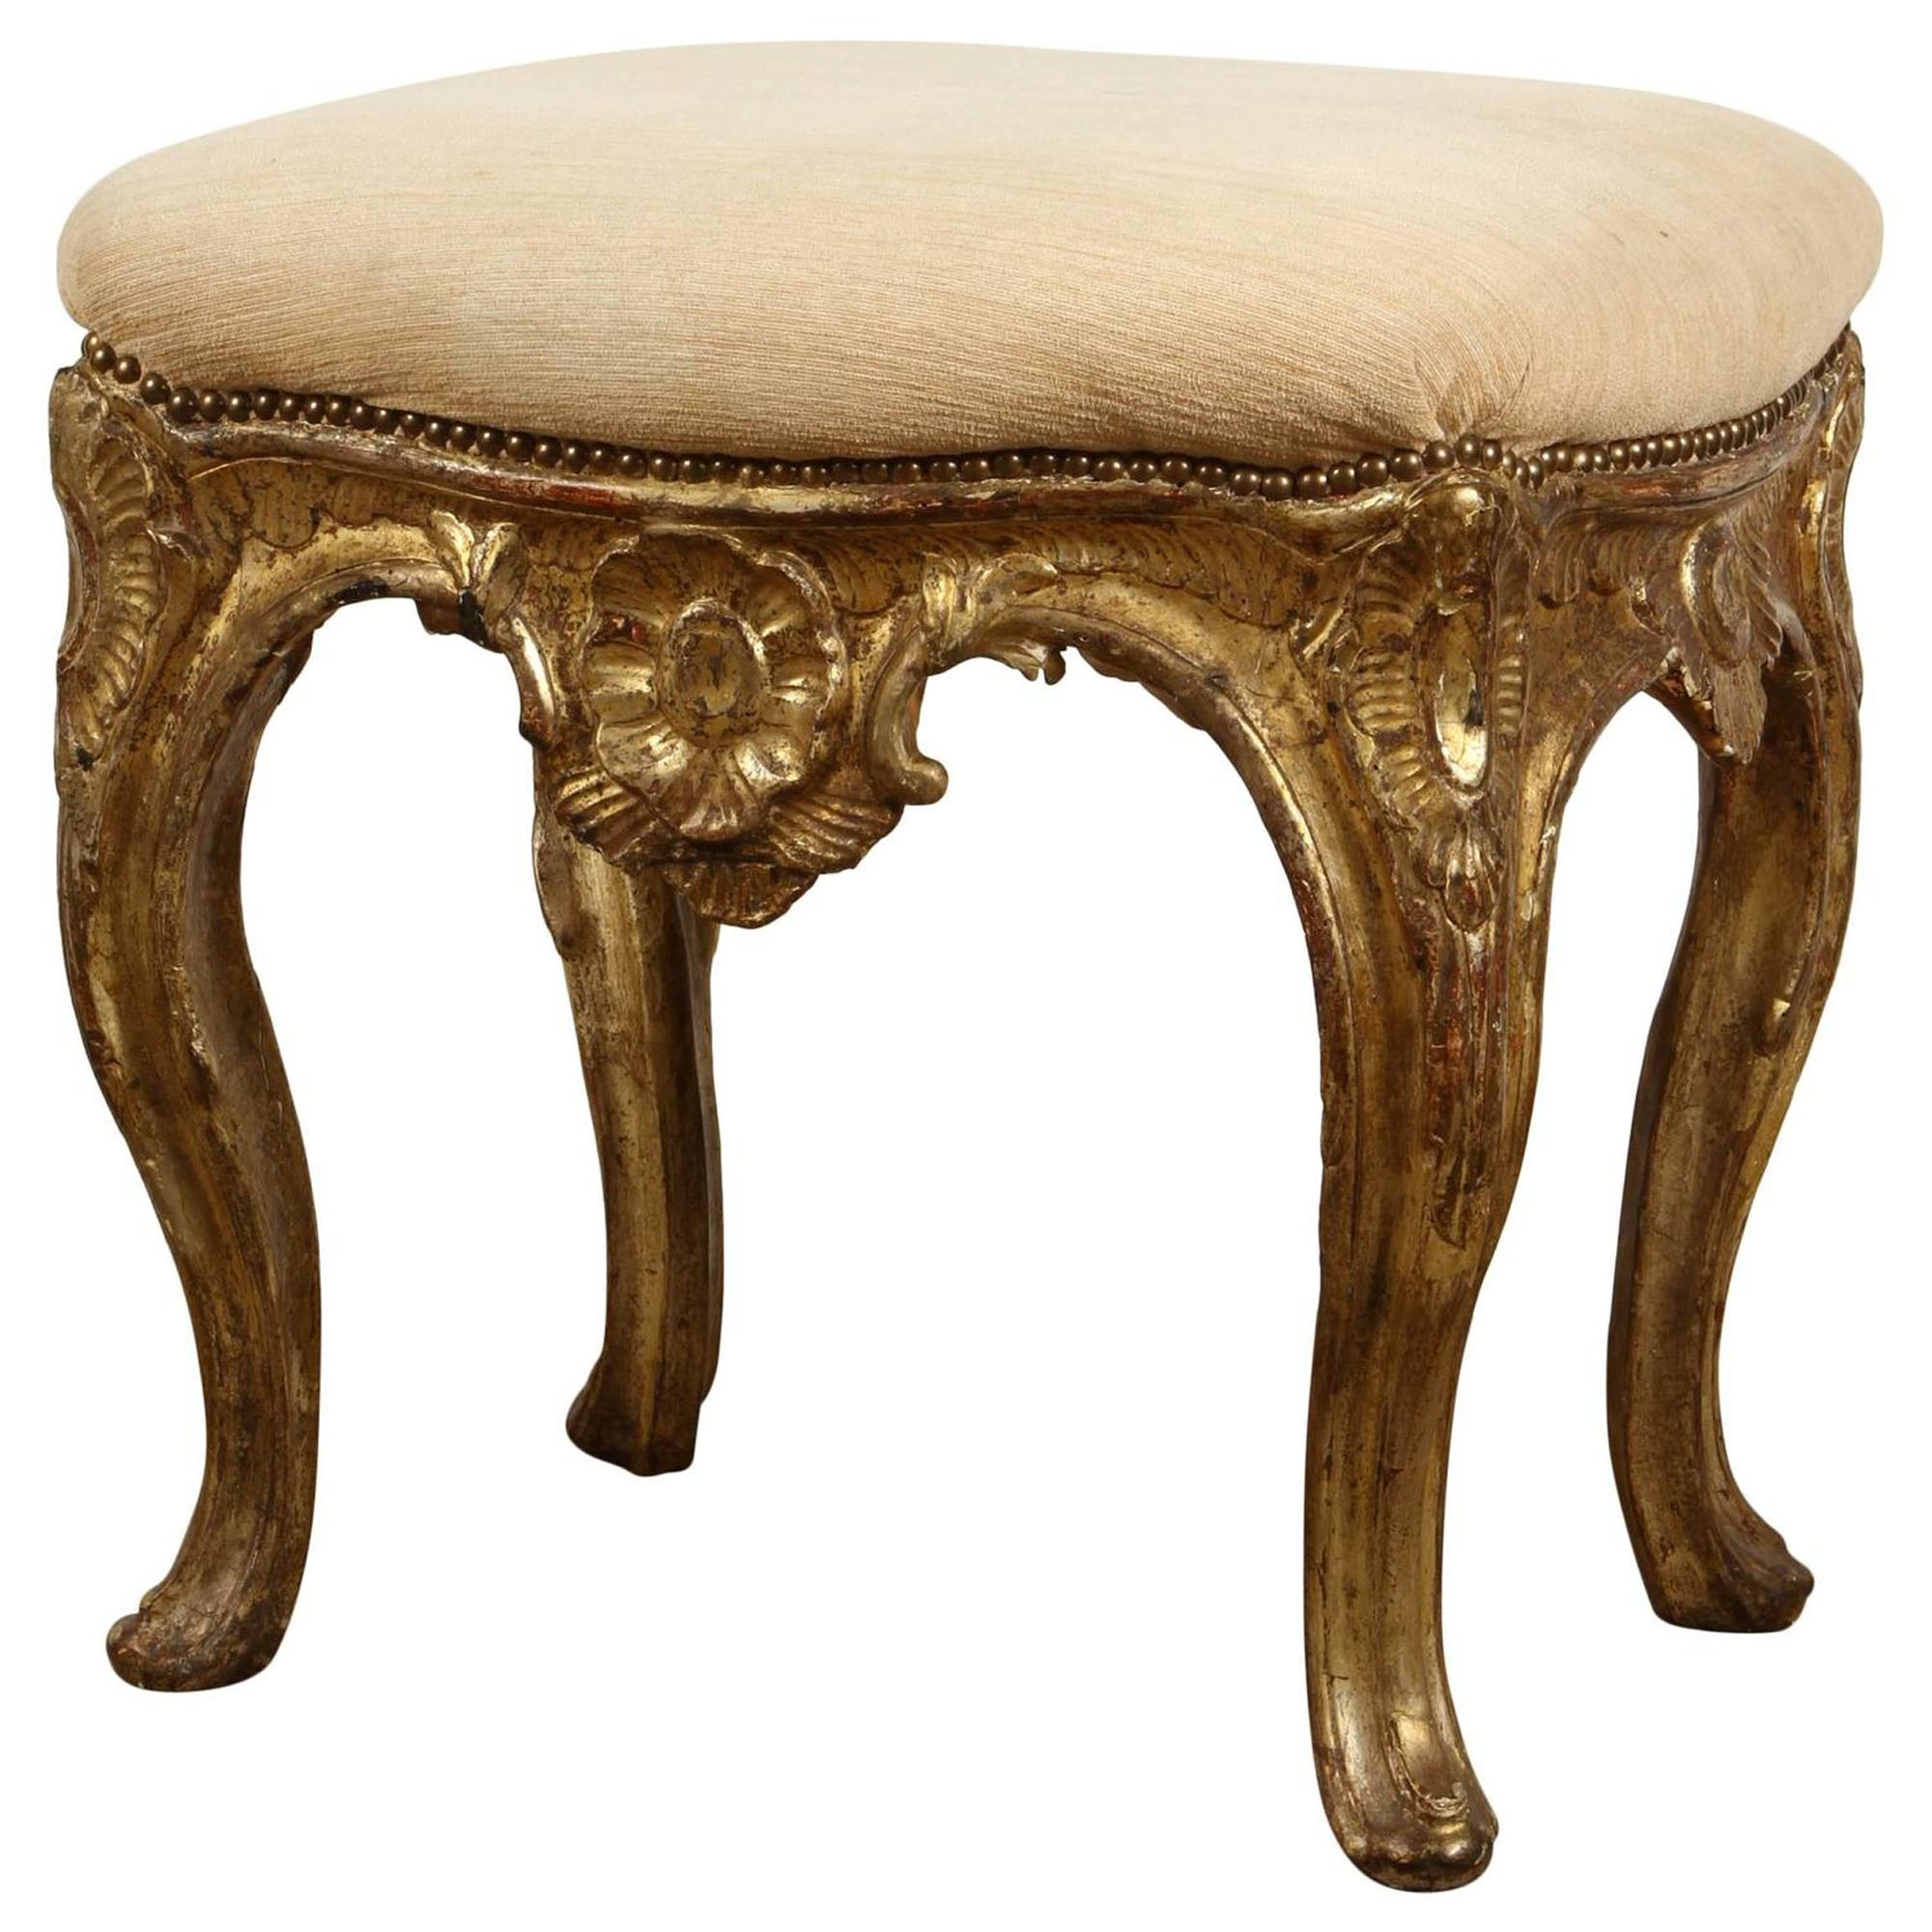 Sensational 19Th Century French Gilded Louis Xvi Carved Stool In 2019 Caraccident5 Cool Chair Designs And Ideas Caraccident5Info